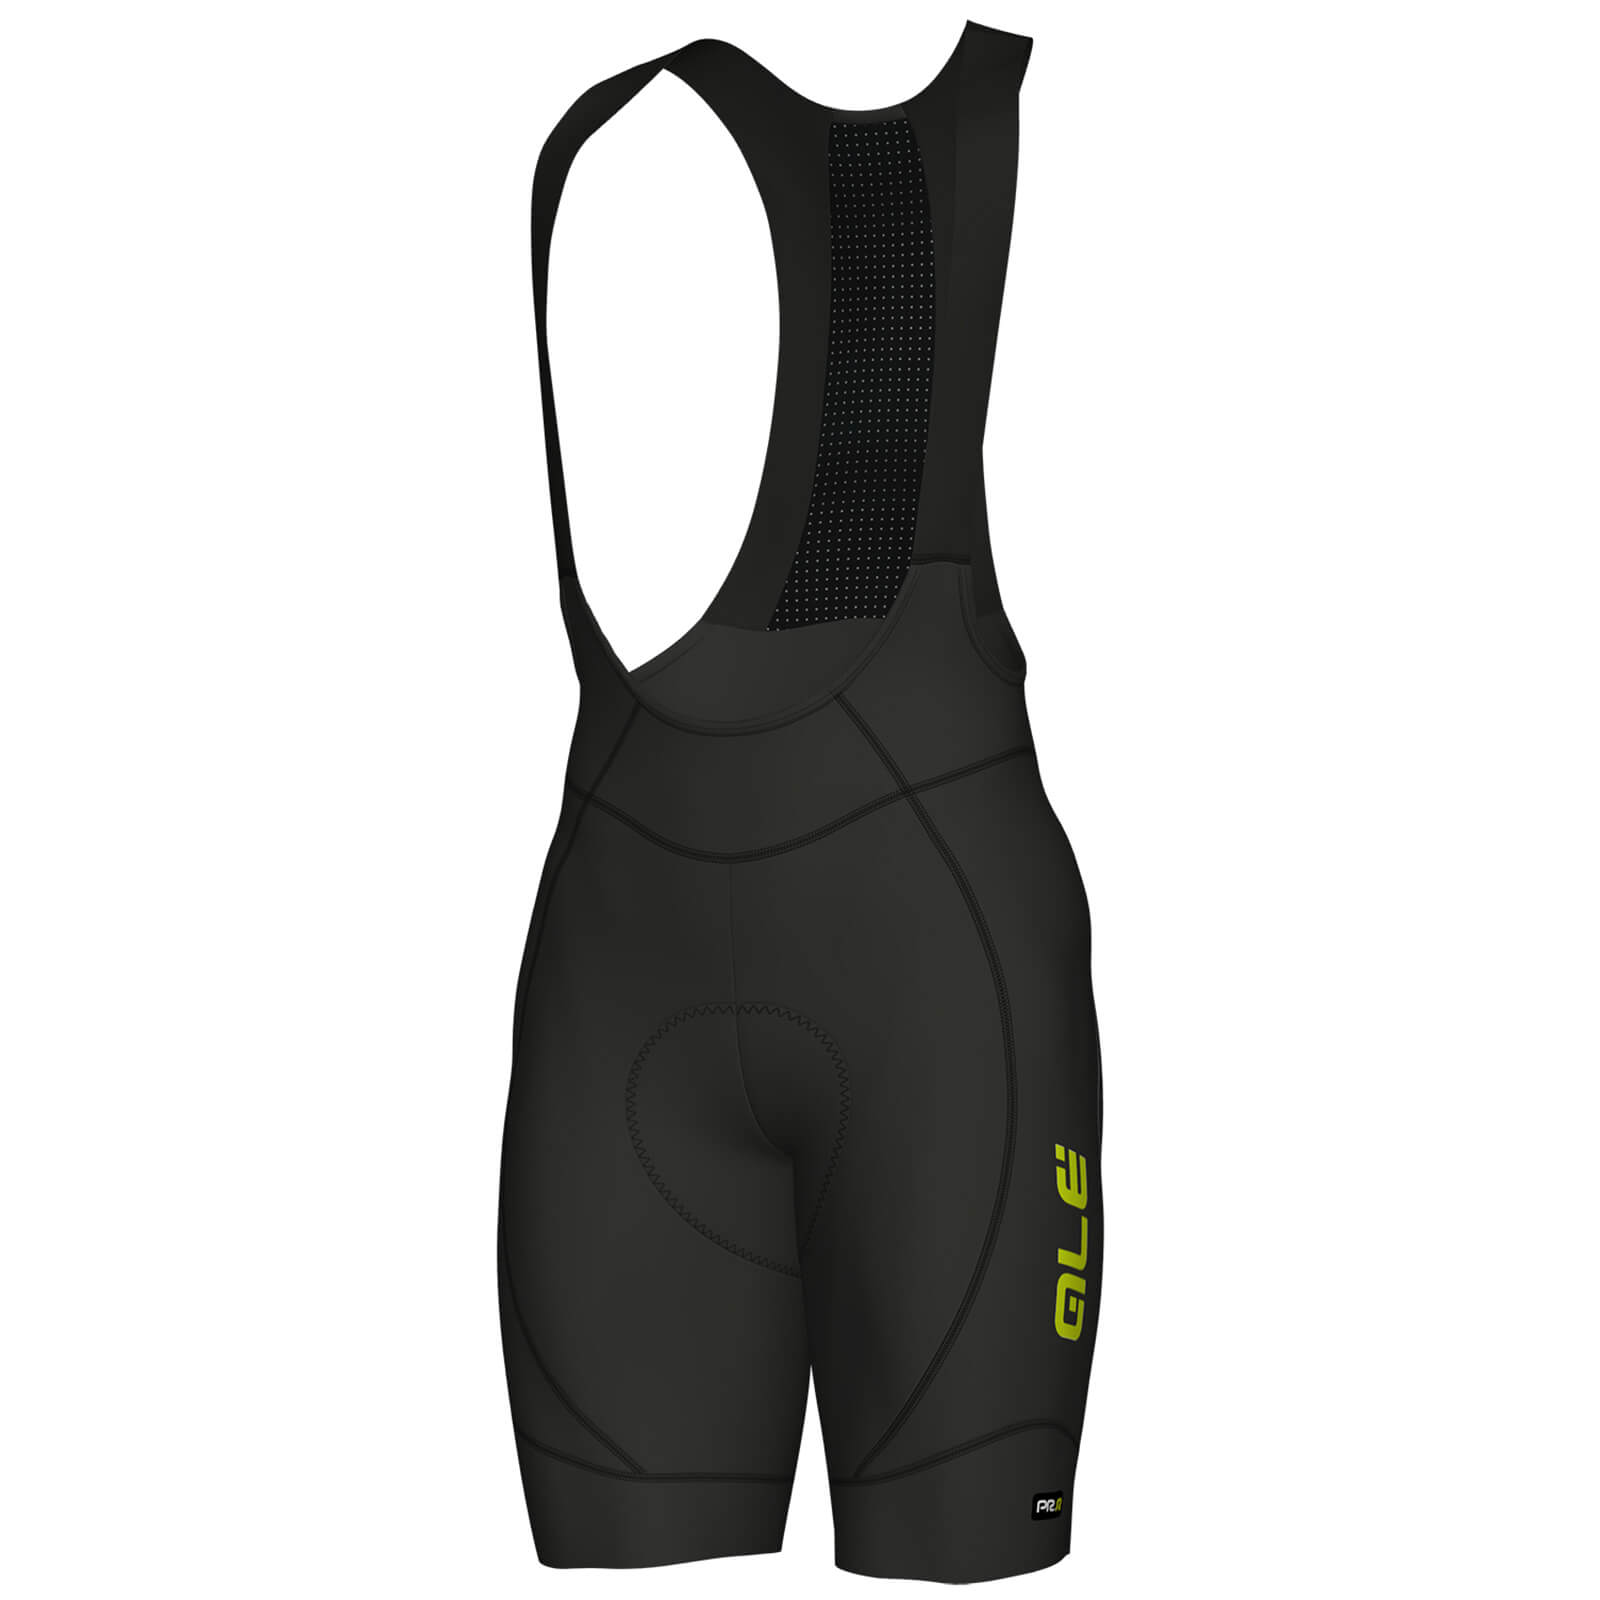 Alé PRR 2.0 Agonista Bib Shorts - Black/Yellow